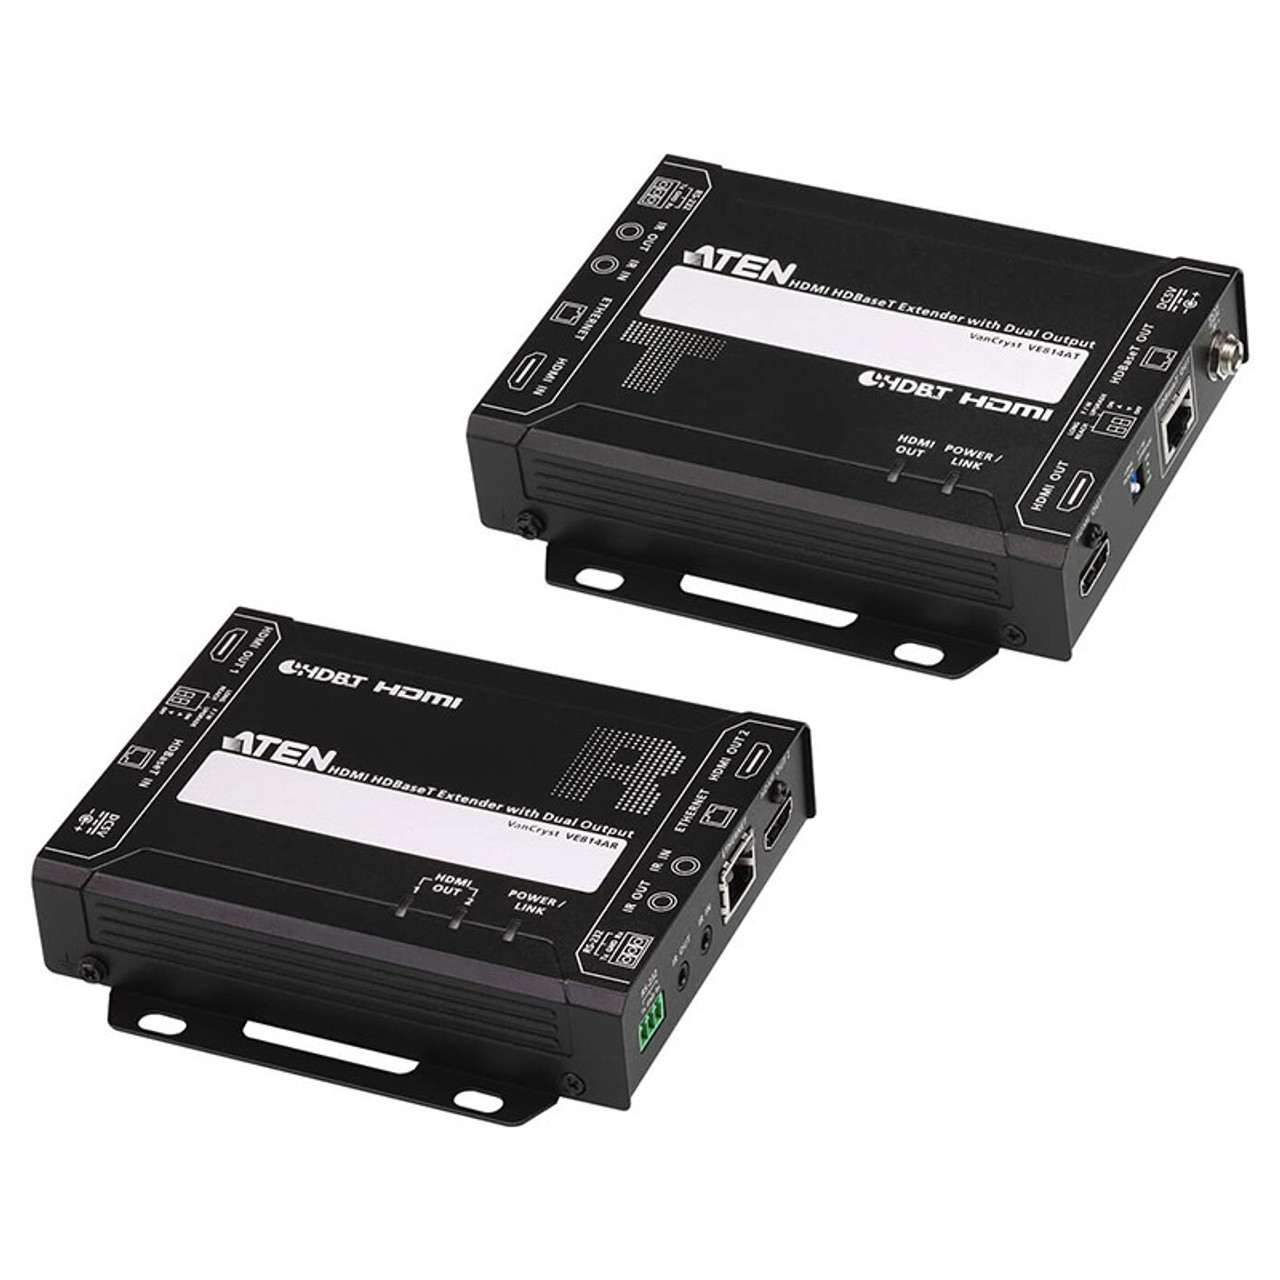 Image for ATEN VE814A HDMI HDBaseT Extender with Dual Output - 4K @ 100m CX Computer Superstore